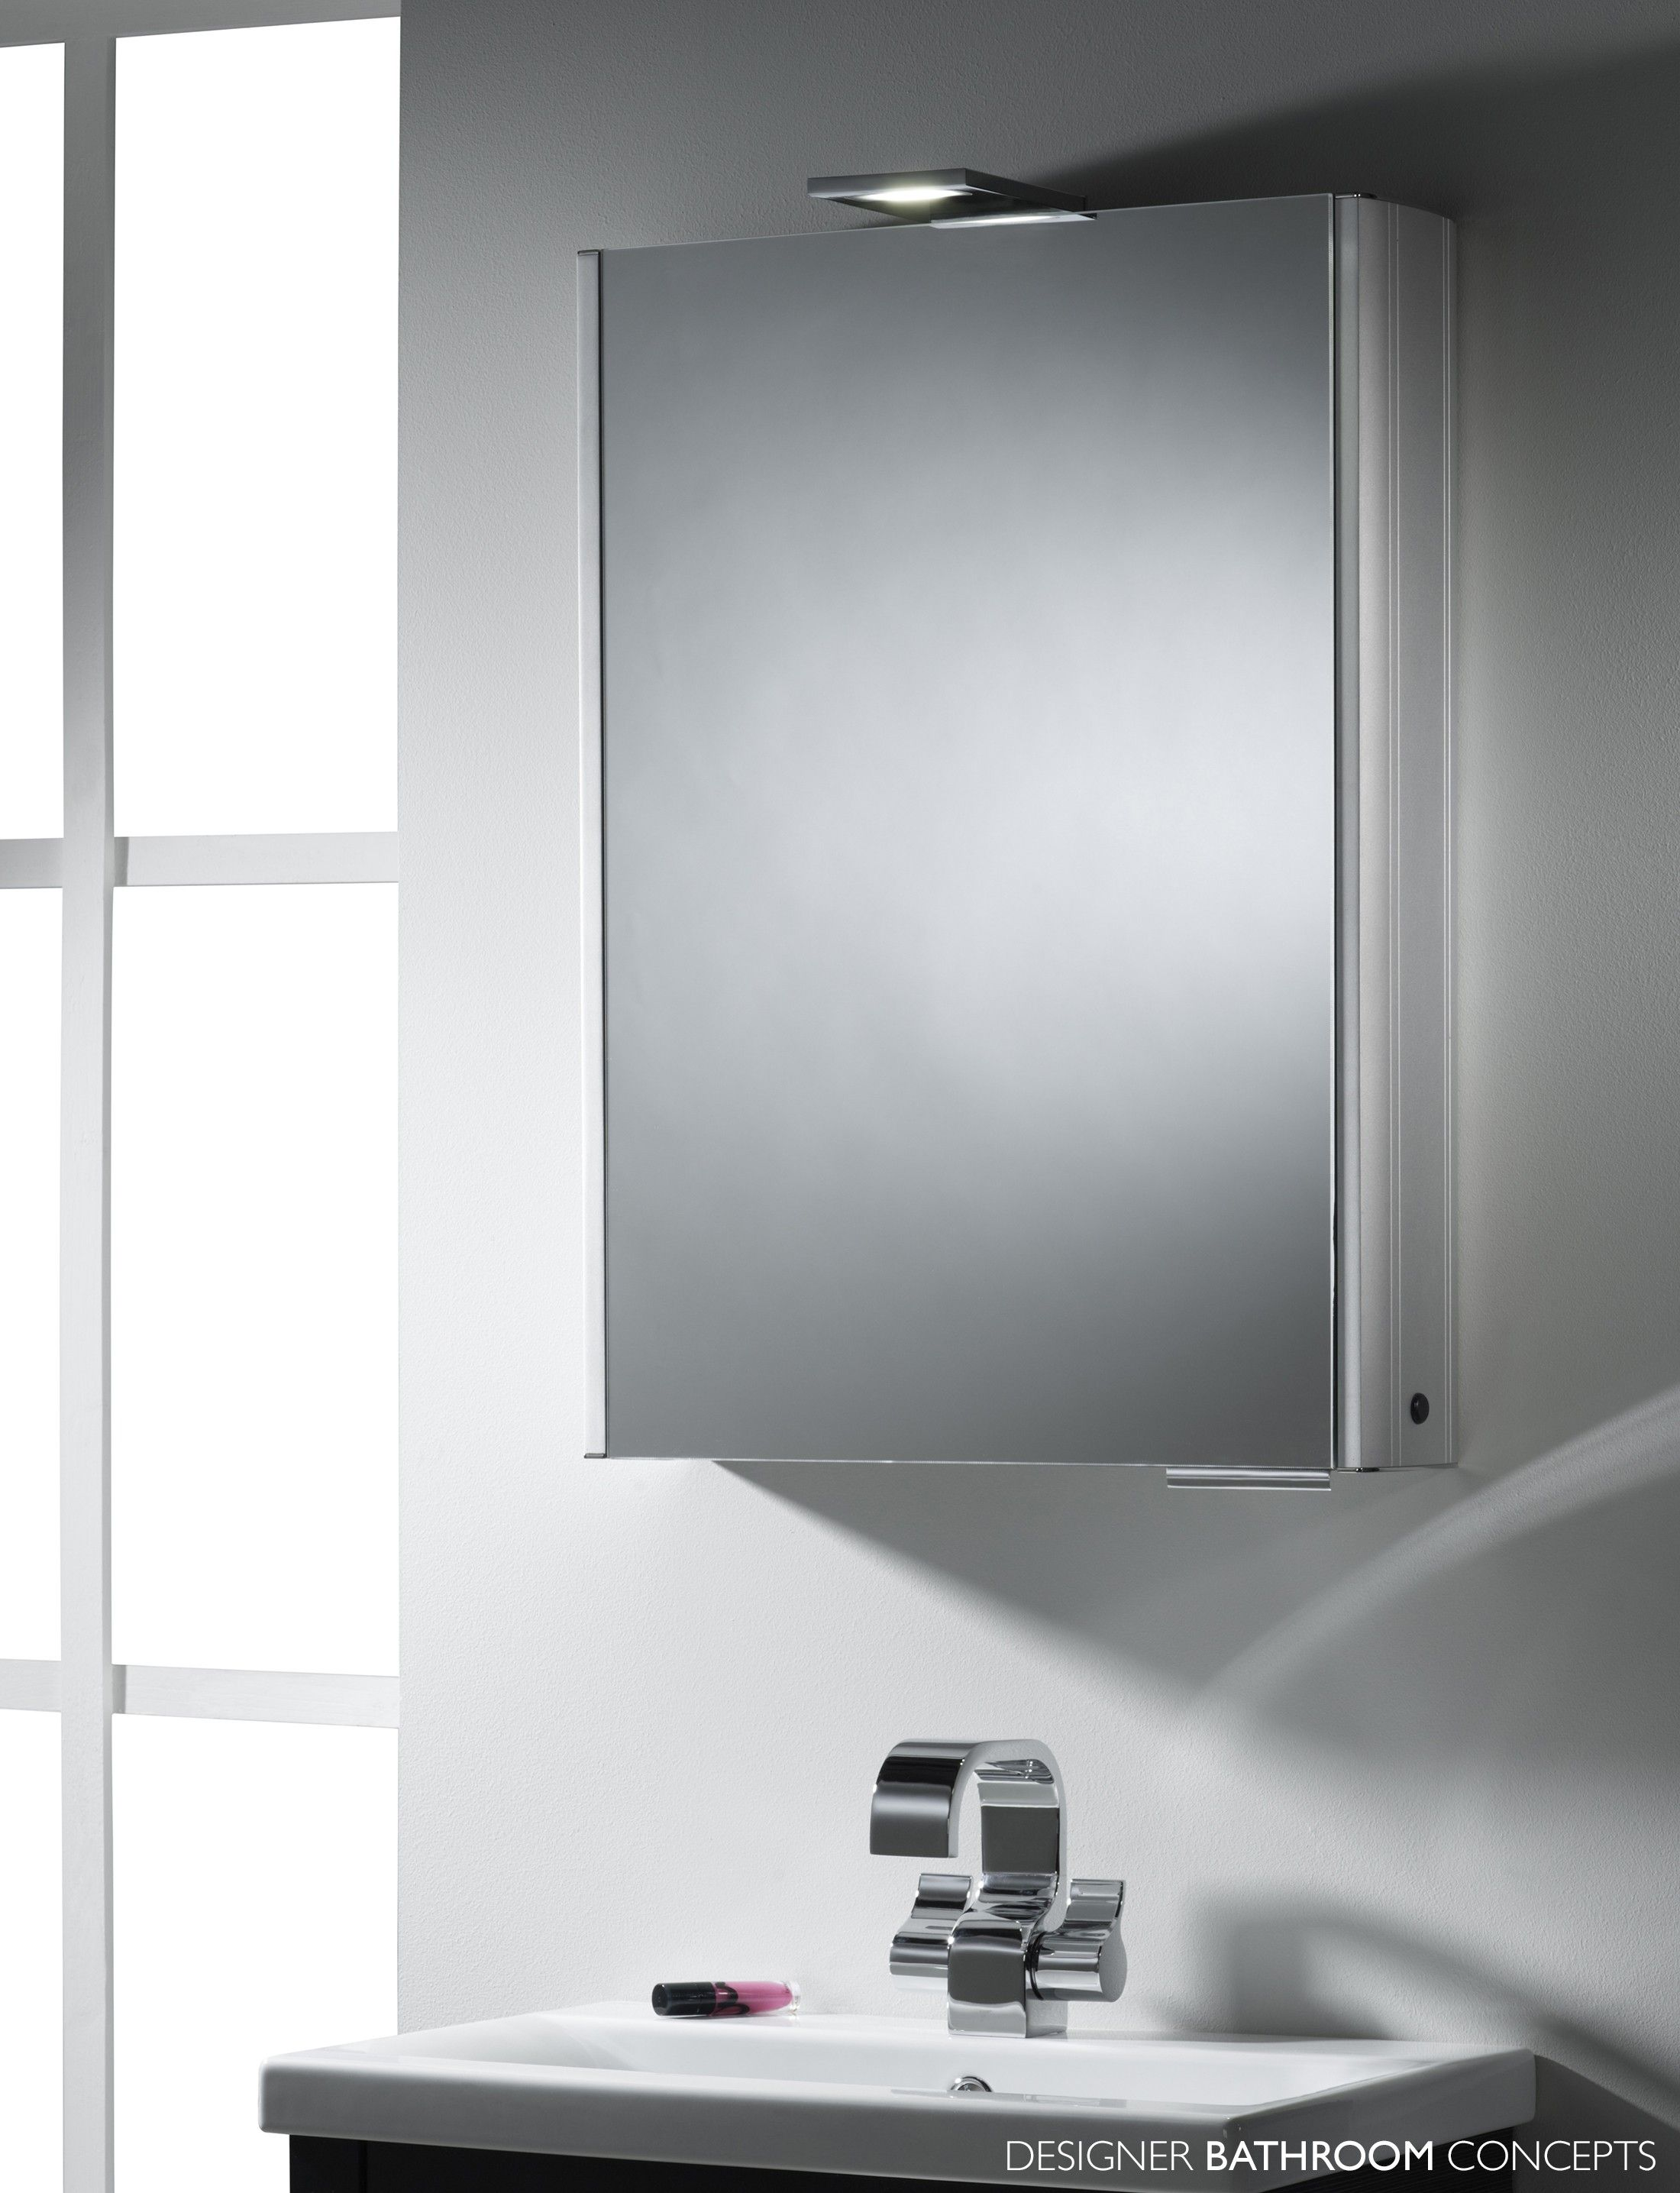 Bathroom Mirror Cabinets With Demister | http://drrw.us | Pinterest ...